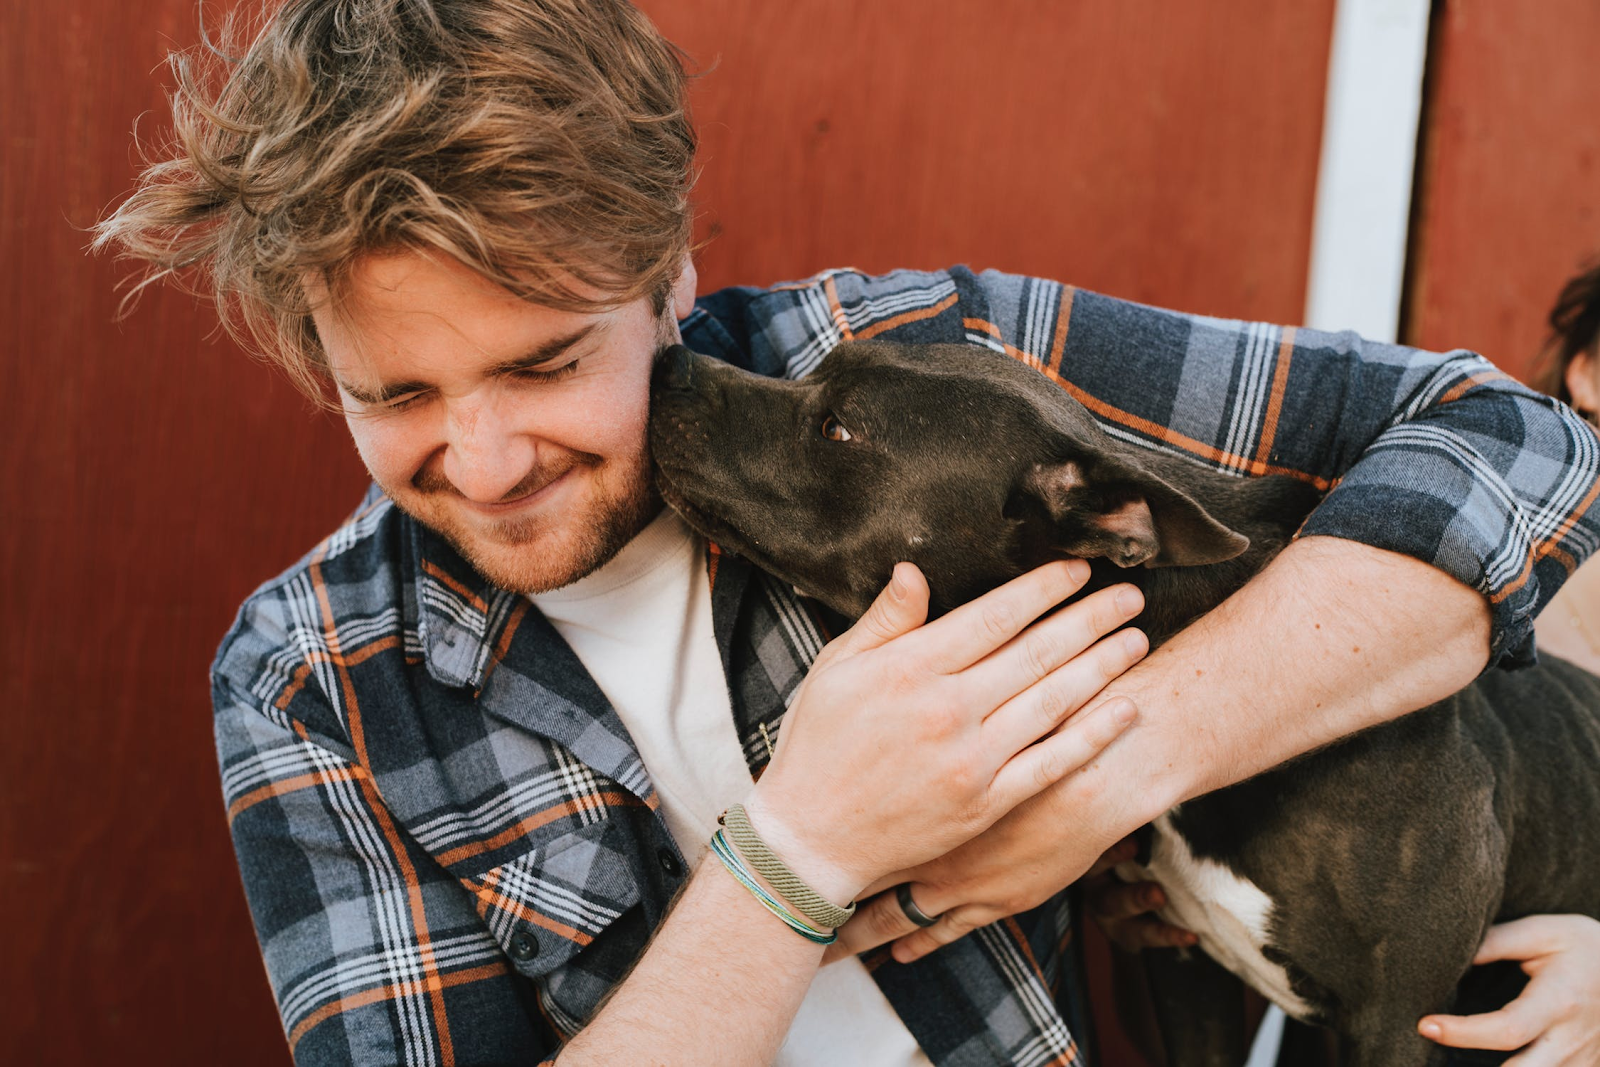 a black pitbull terrier with a white stomach kisses a man with blond hair and a gray and orange flannel shirt on the cheek